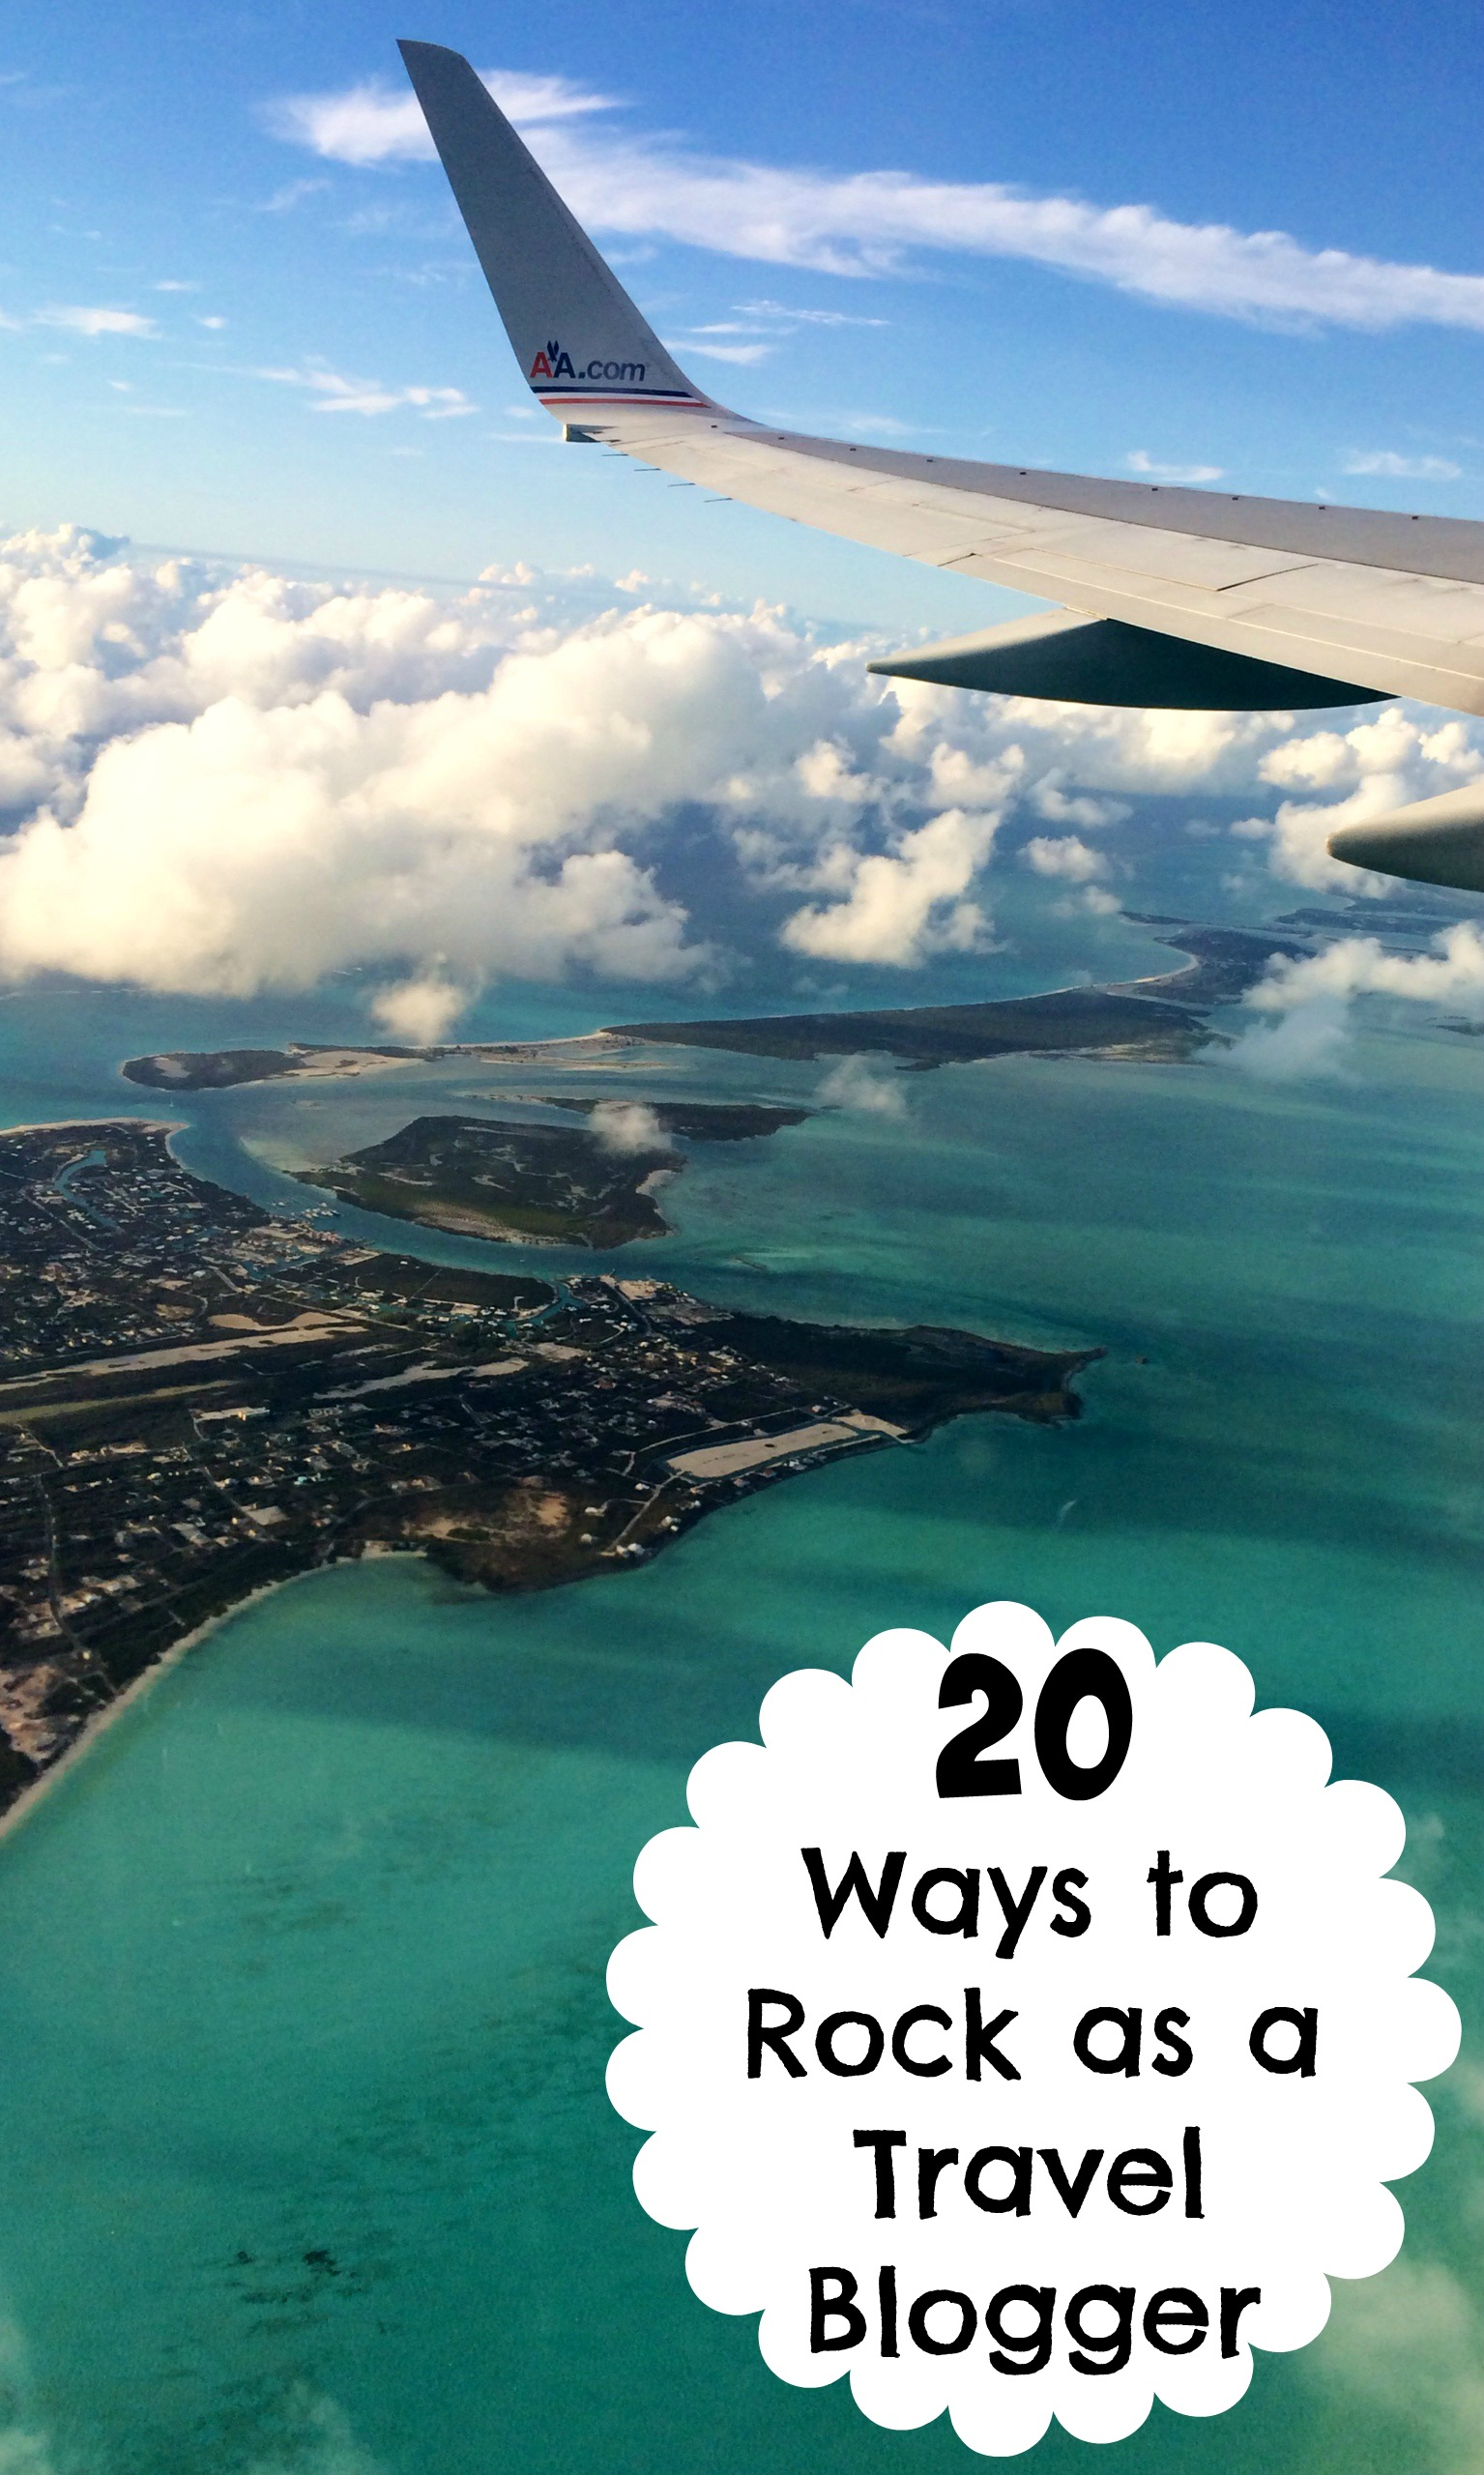 20 ways to rock as a travel blogger